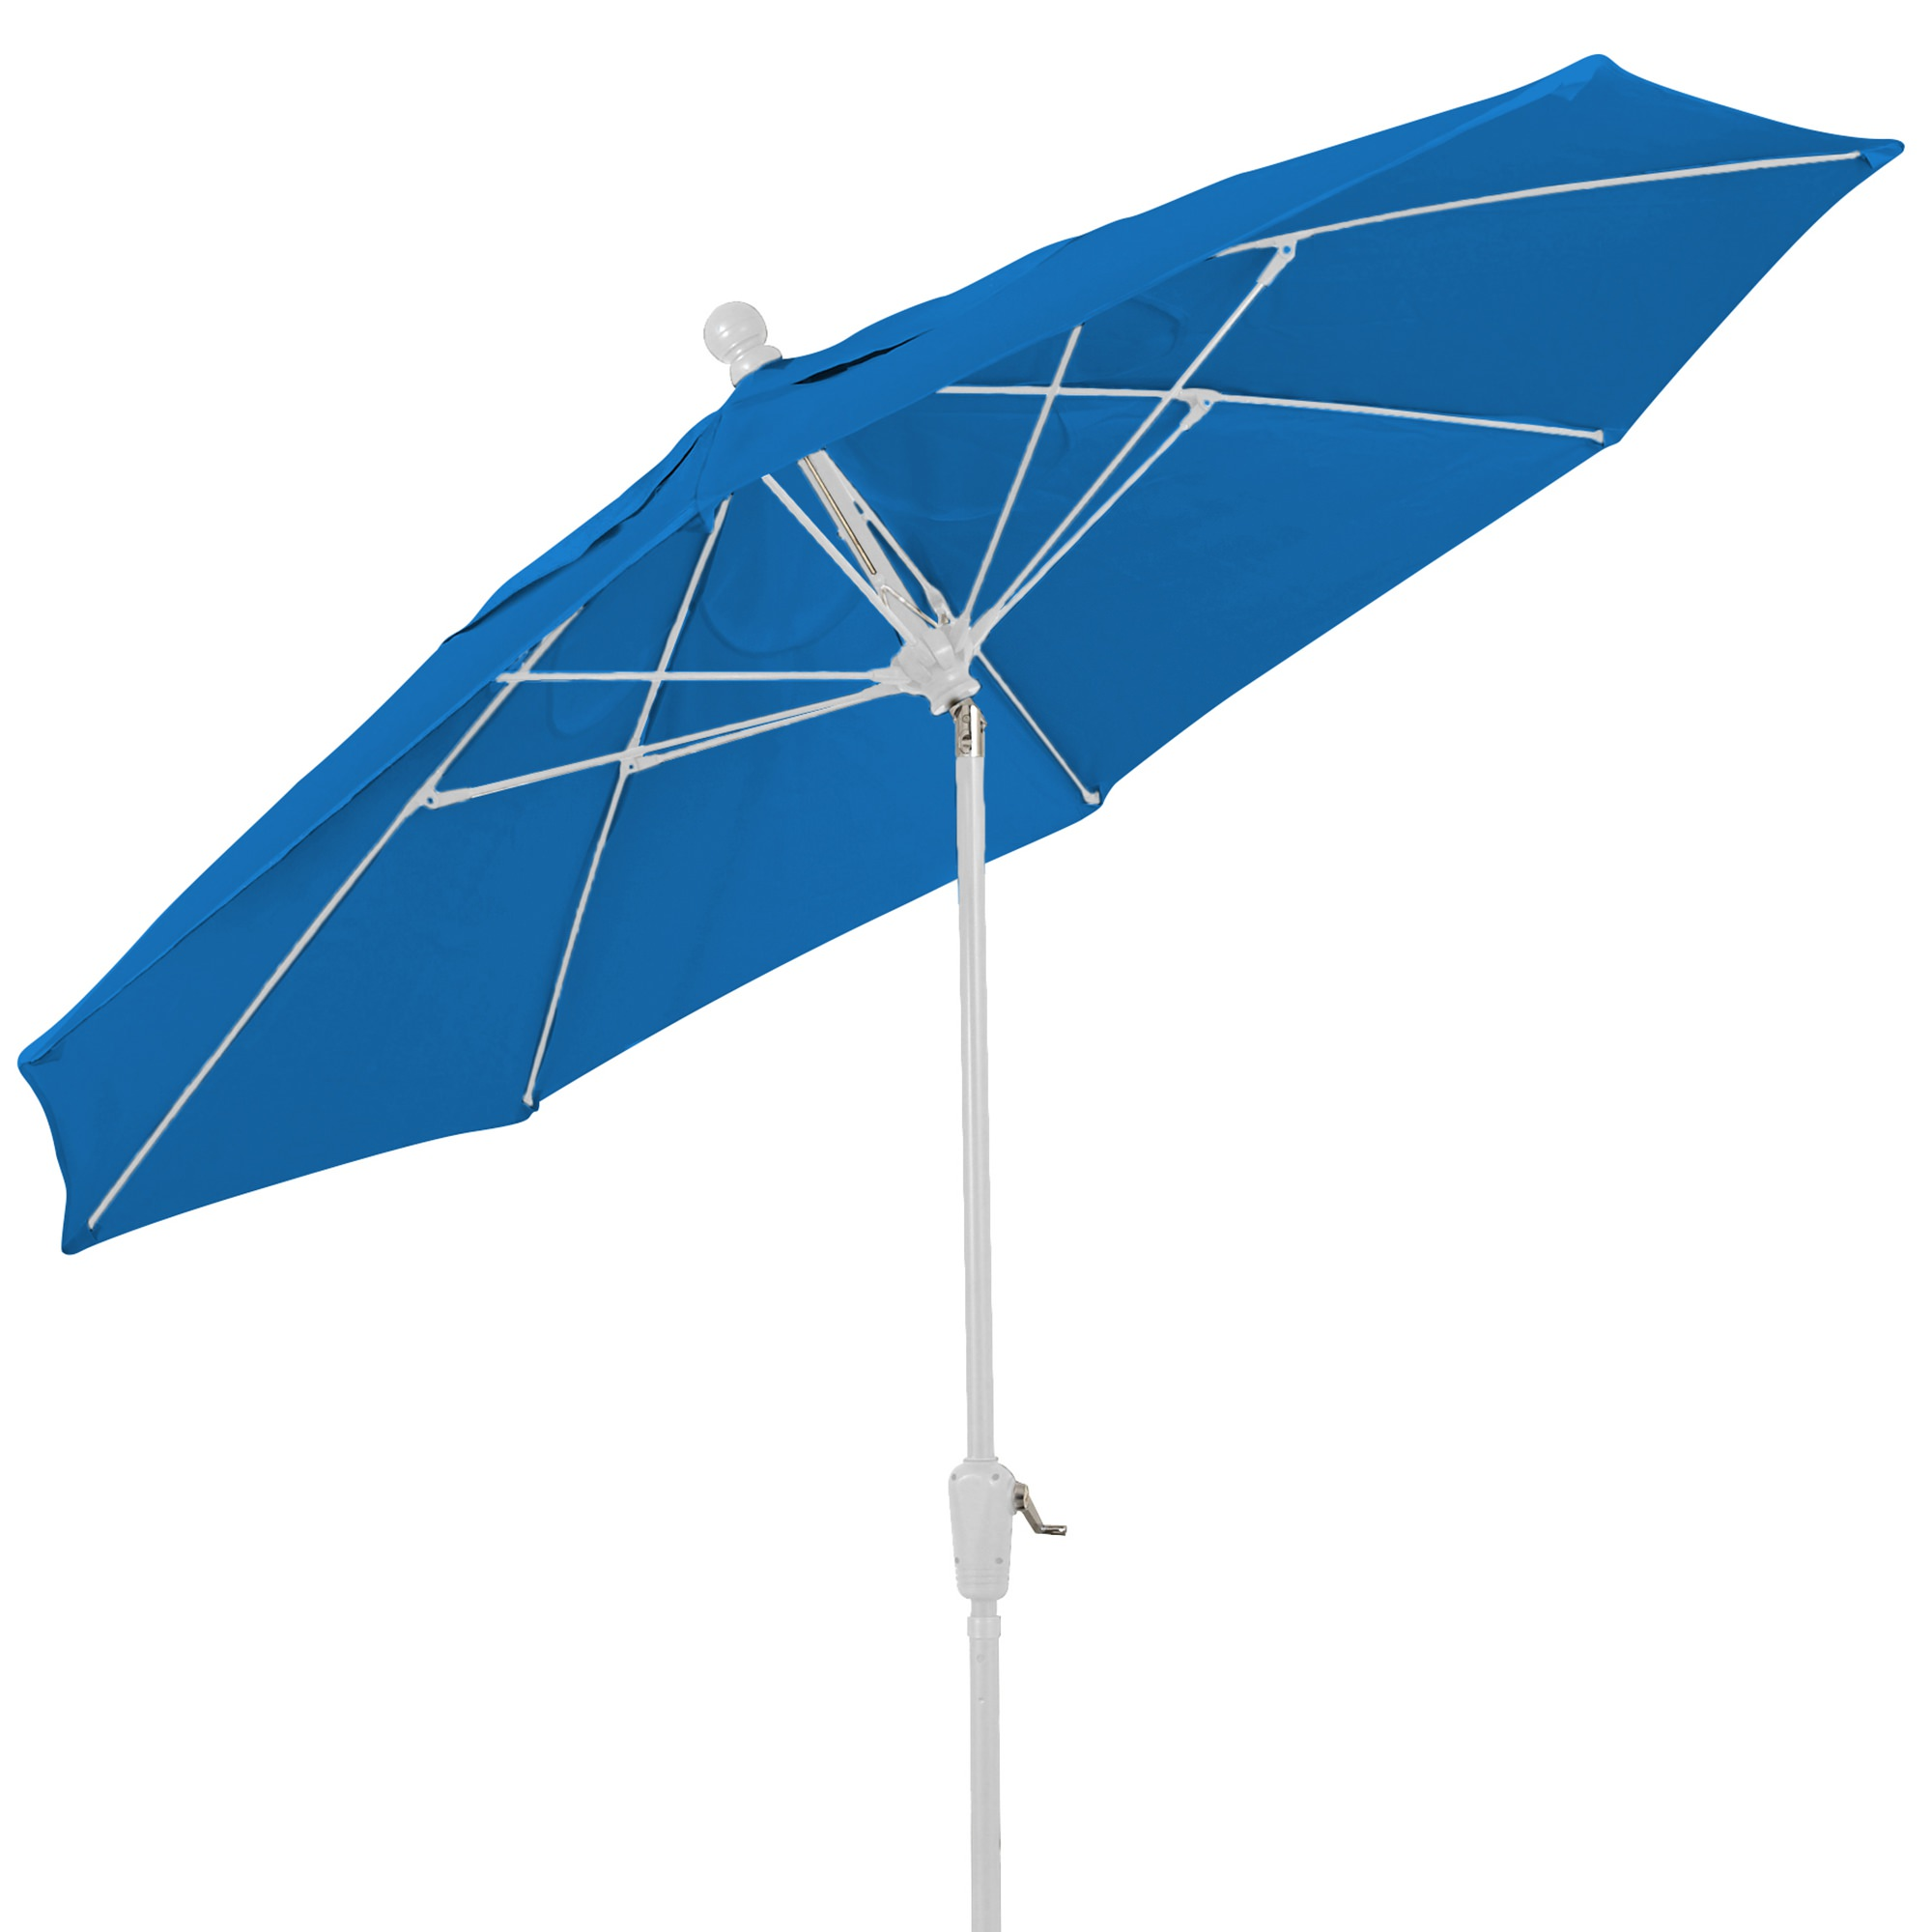 Shop 9 Ft Crank Lift Patio Umbrella with White Pole and Push